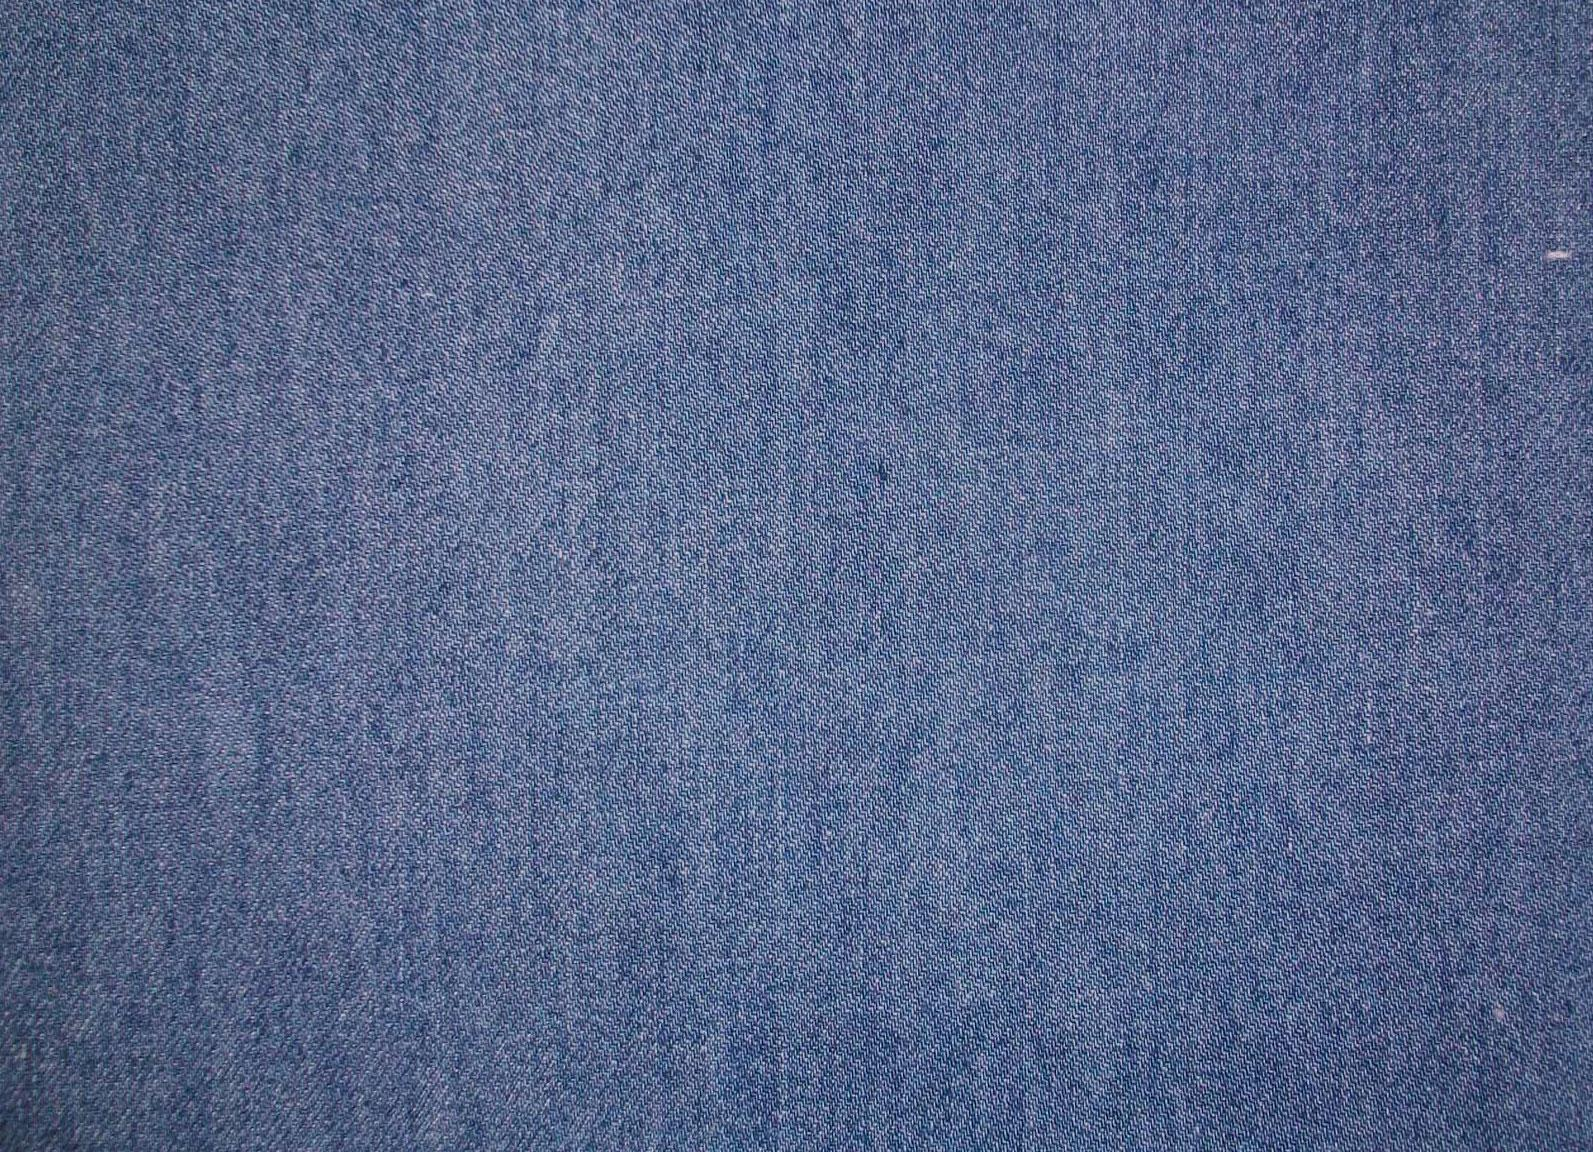 Home Decorating Colors Stroheim Fabrics Sconset Beach Denim Navy